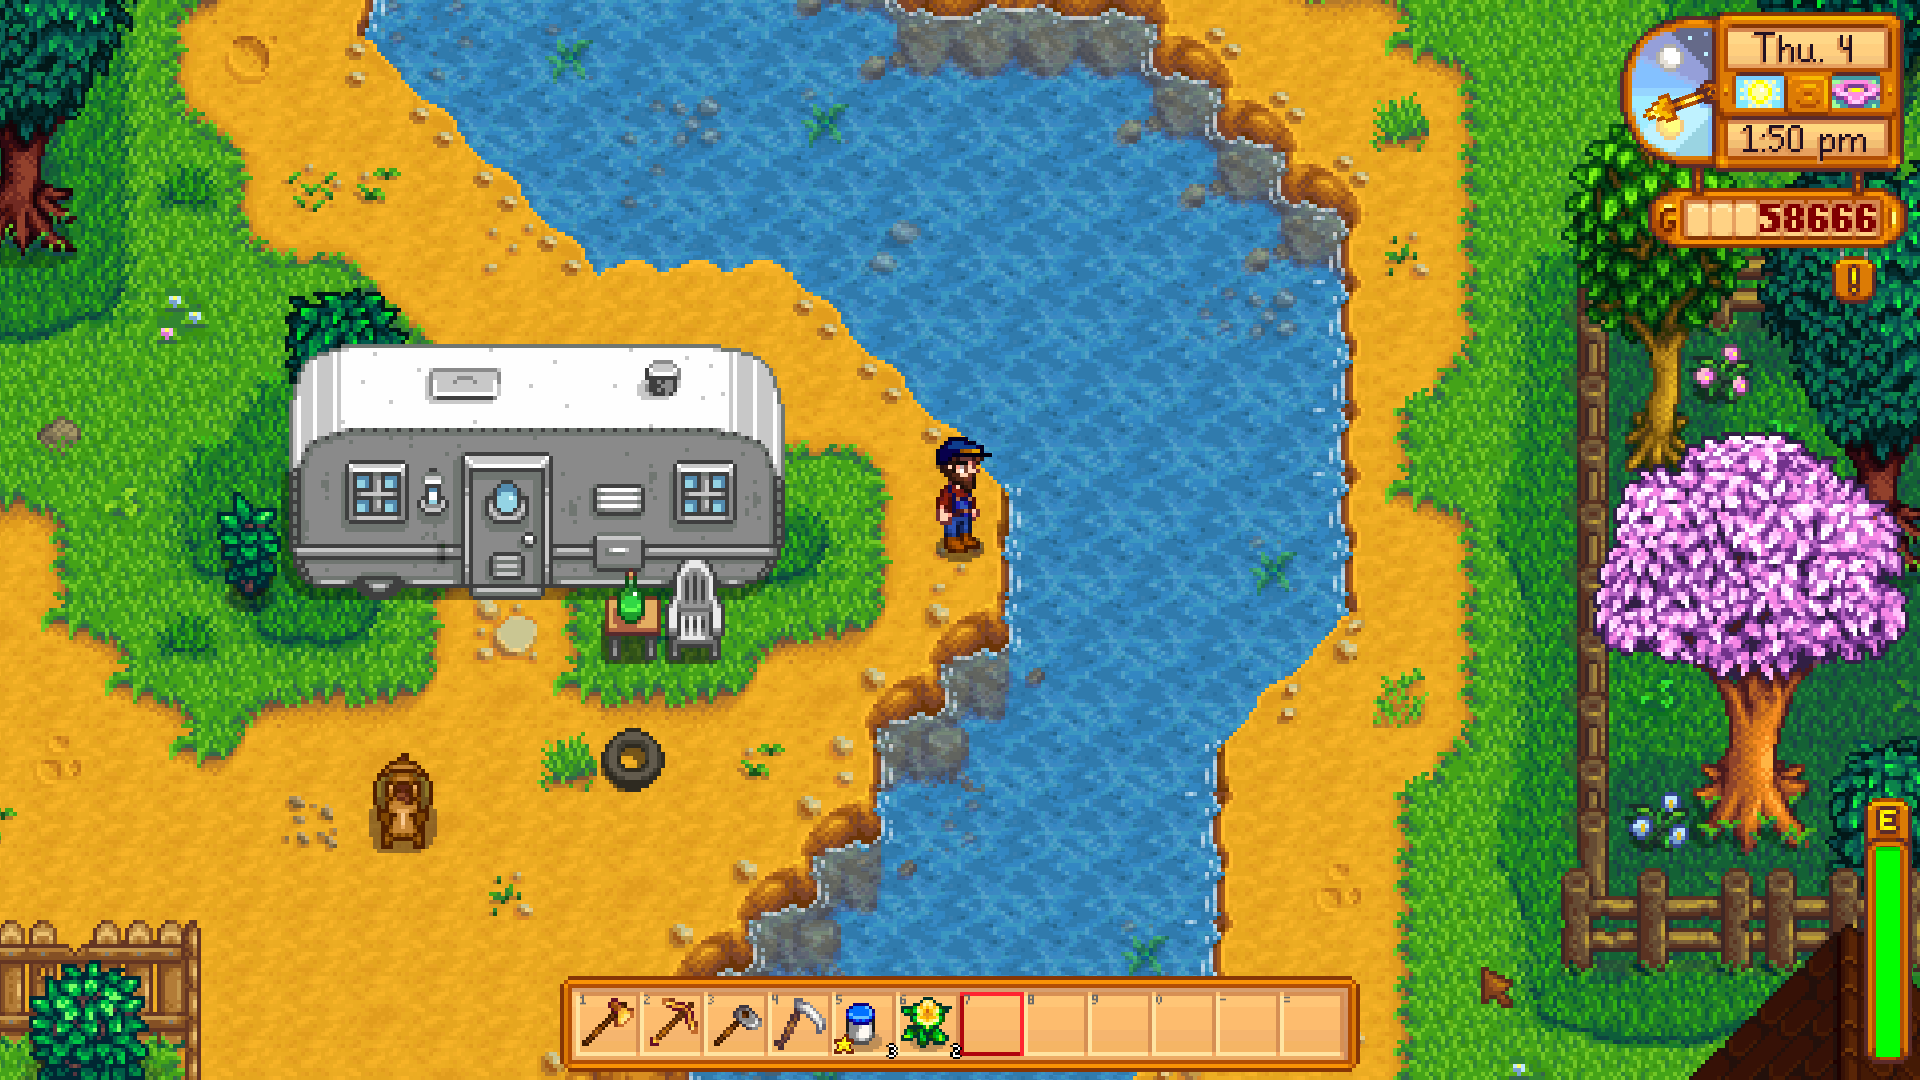 stardew trailer and river